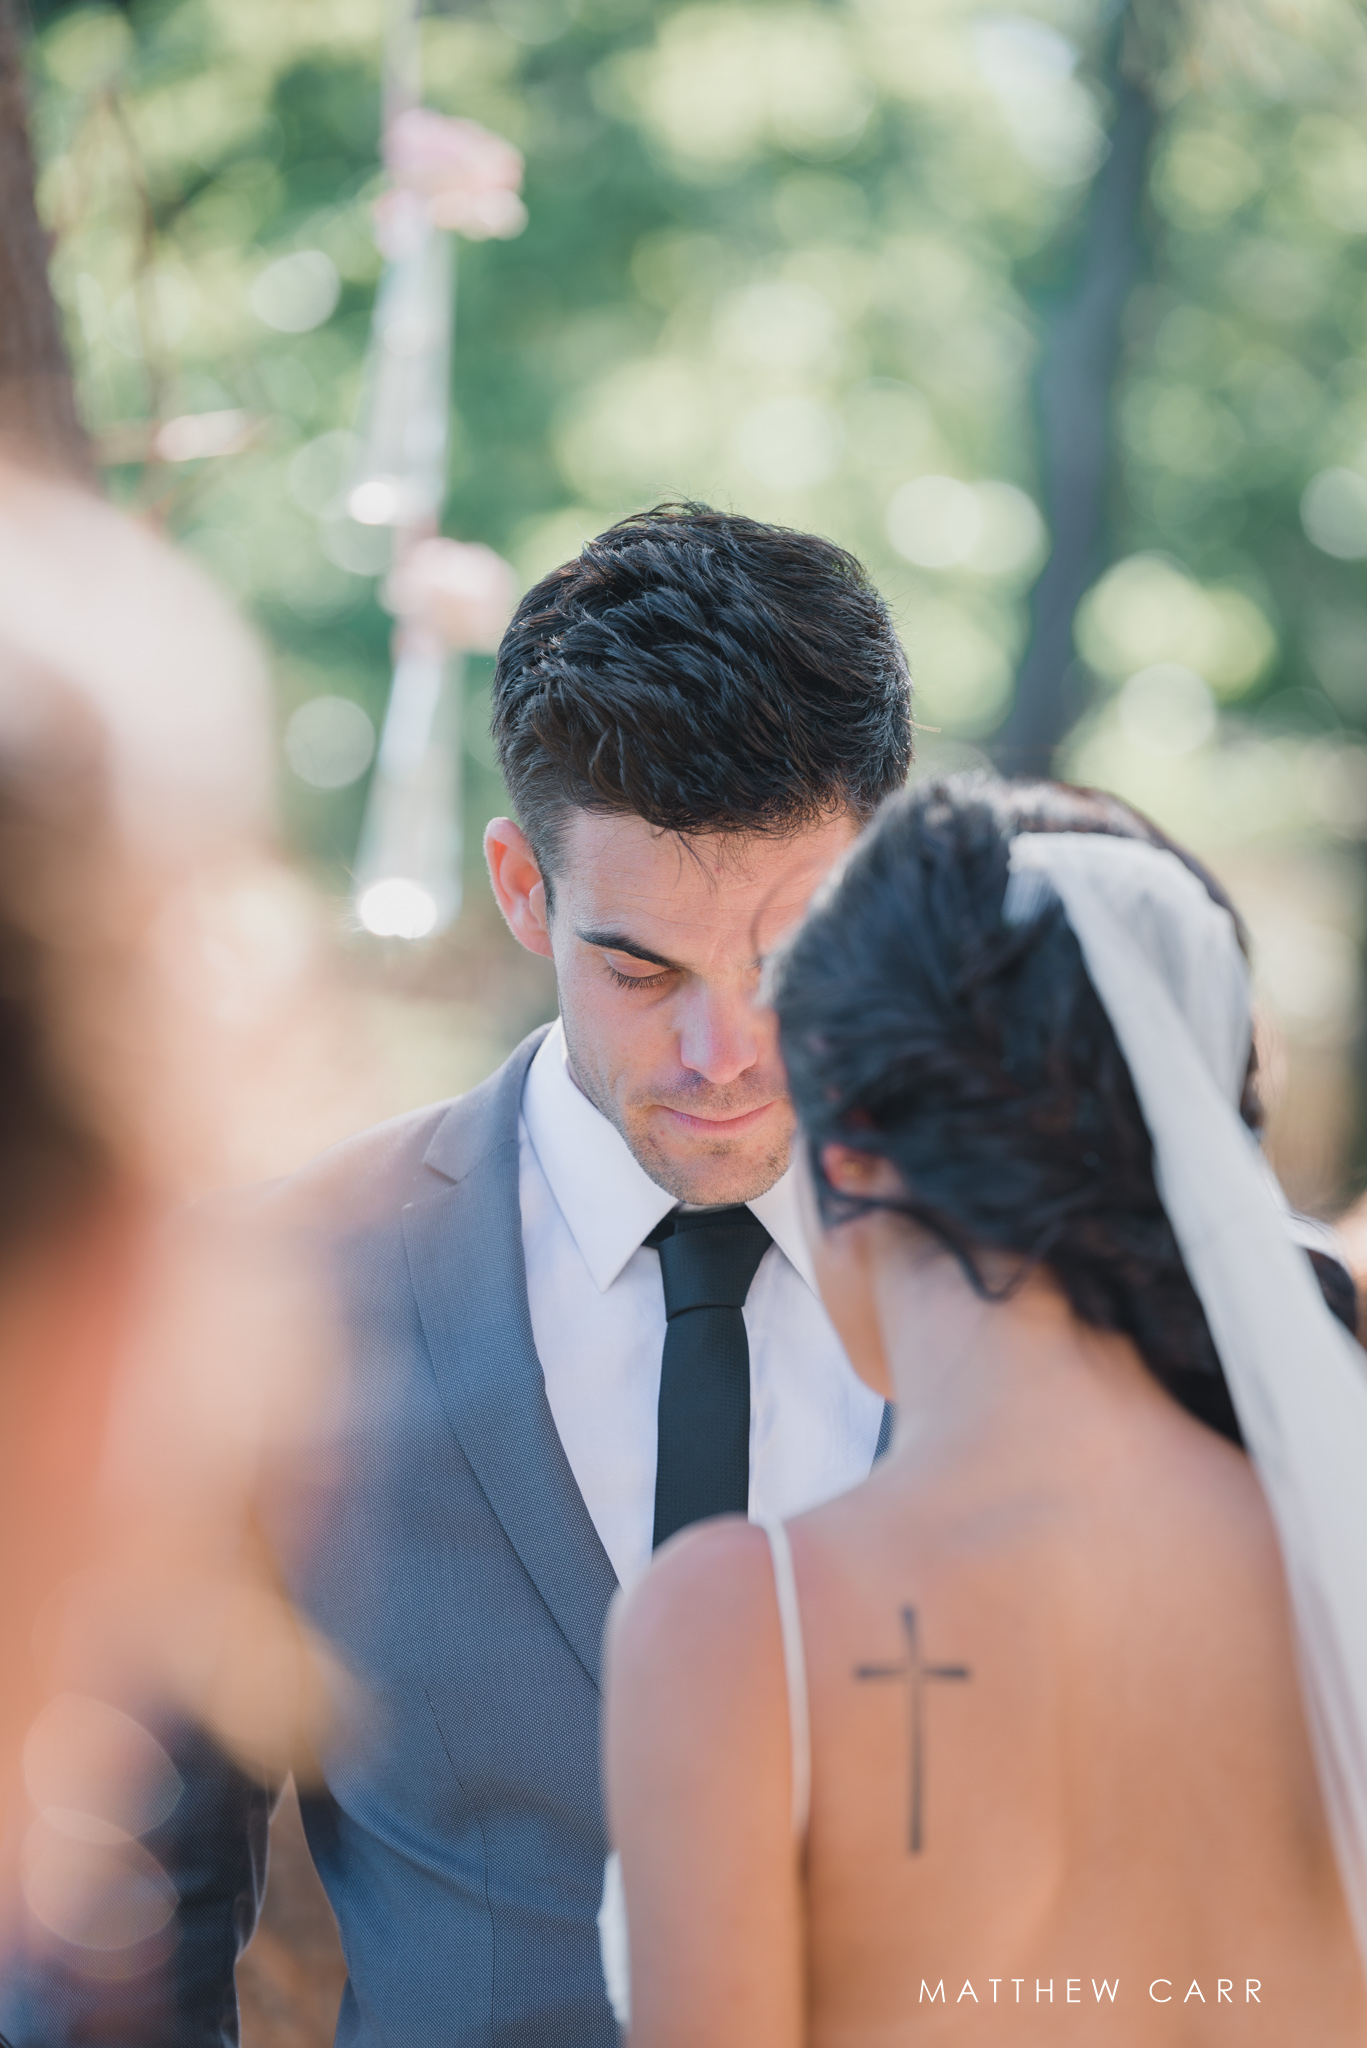 ceremony & after - low res (viewing, social media) (24 of 111).JPG